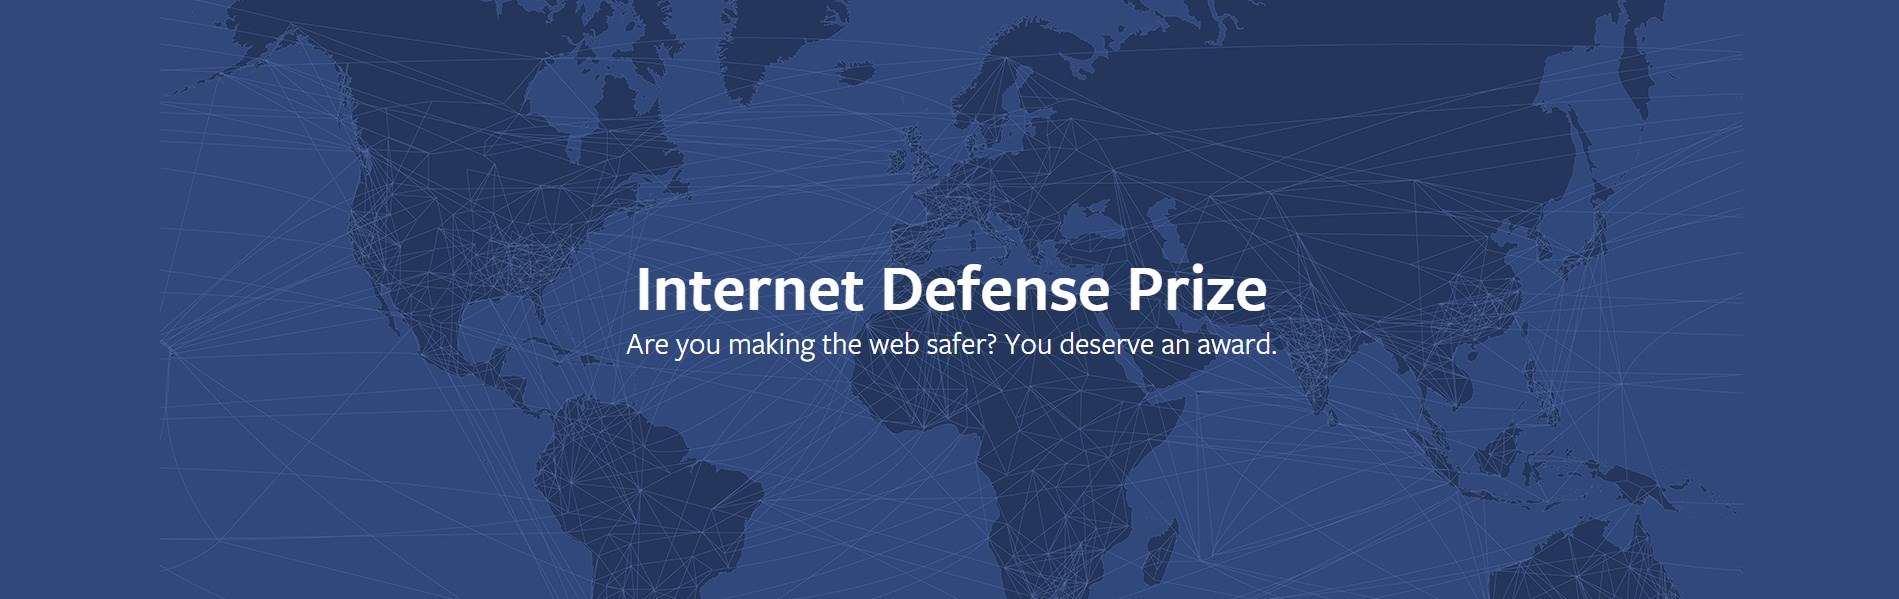 Facebook ups its Internet Defense Prize award to $300,000 - The Next Web